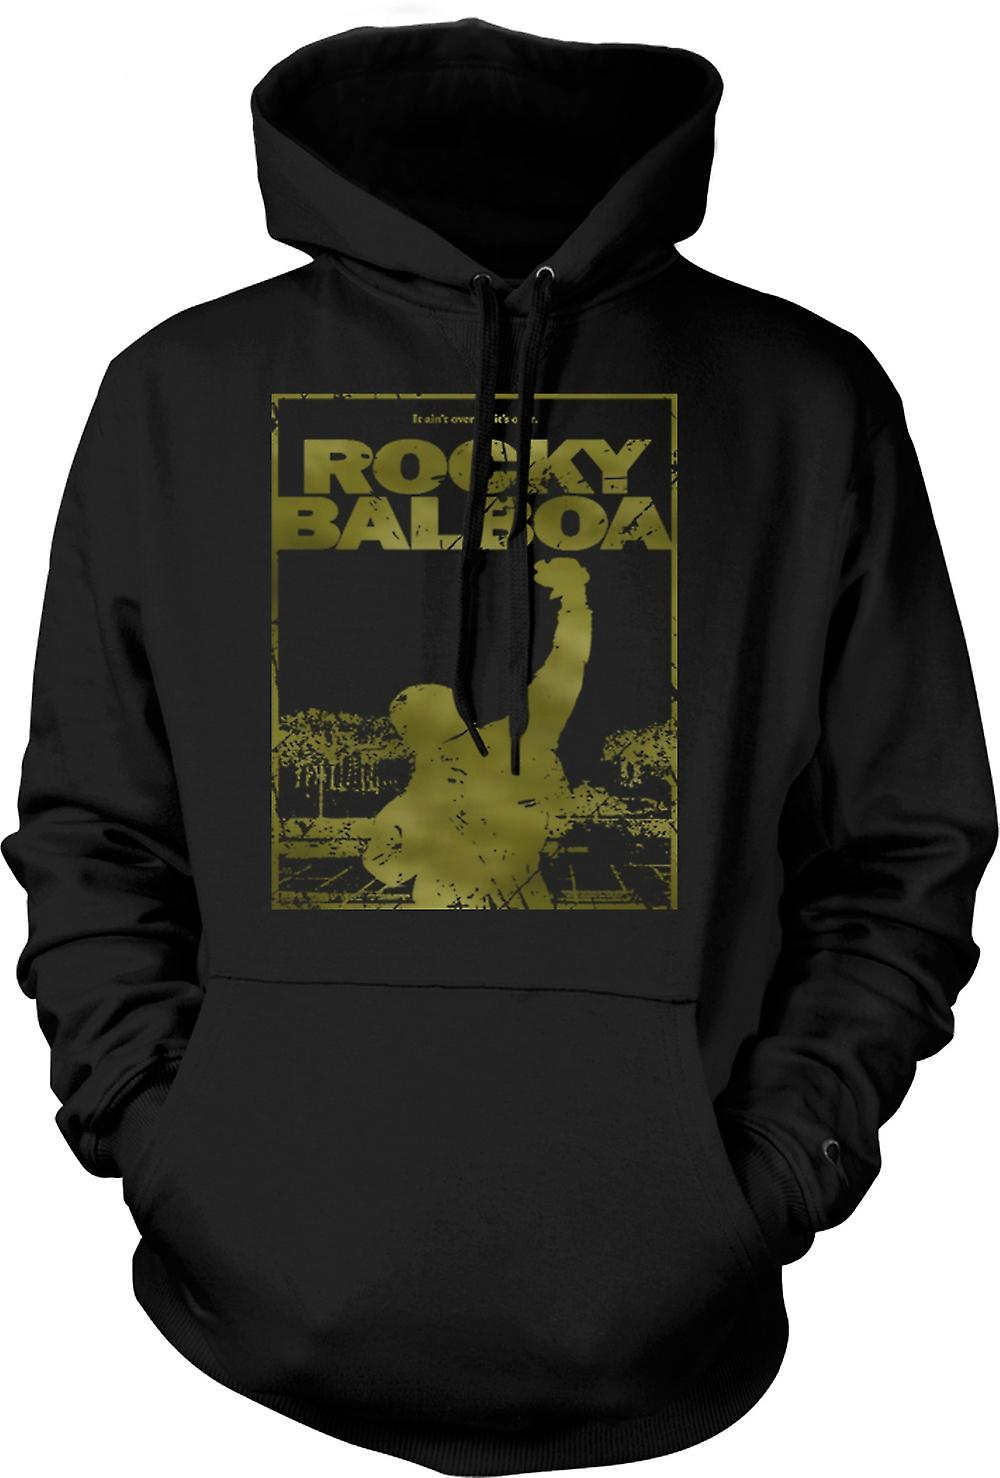 Kids Hoodie - Rocky Balboa Punch - Movie - Funny